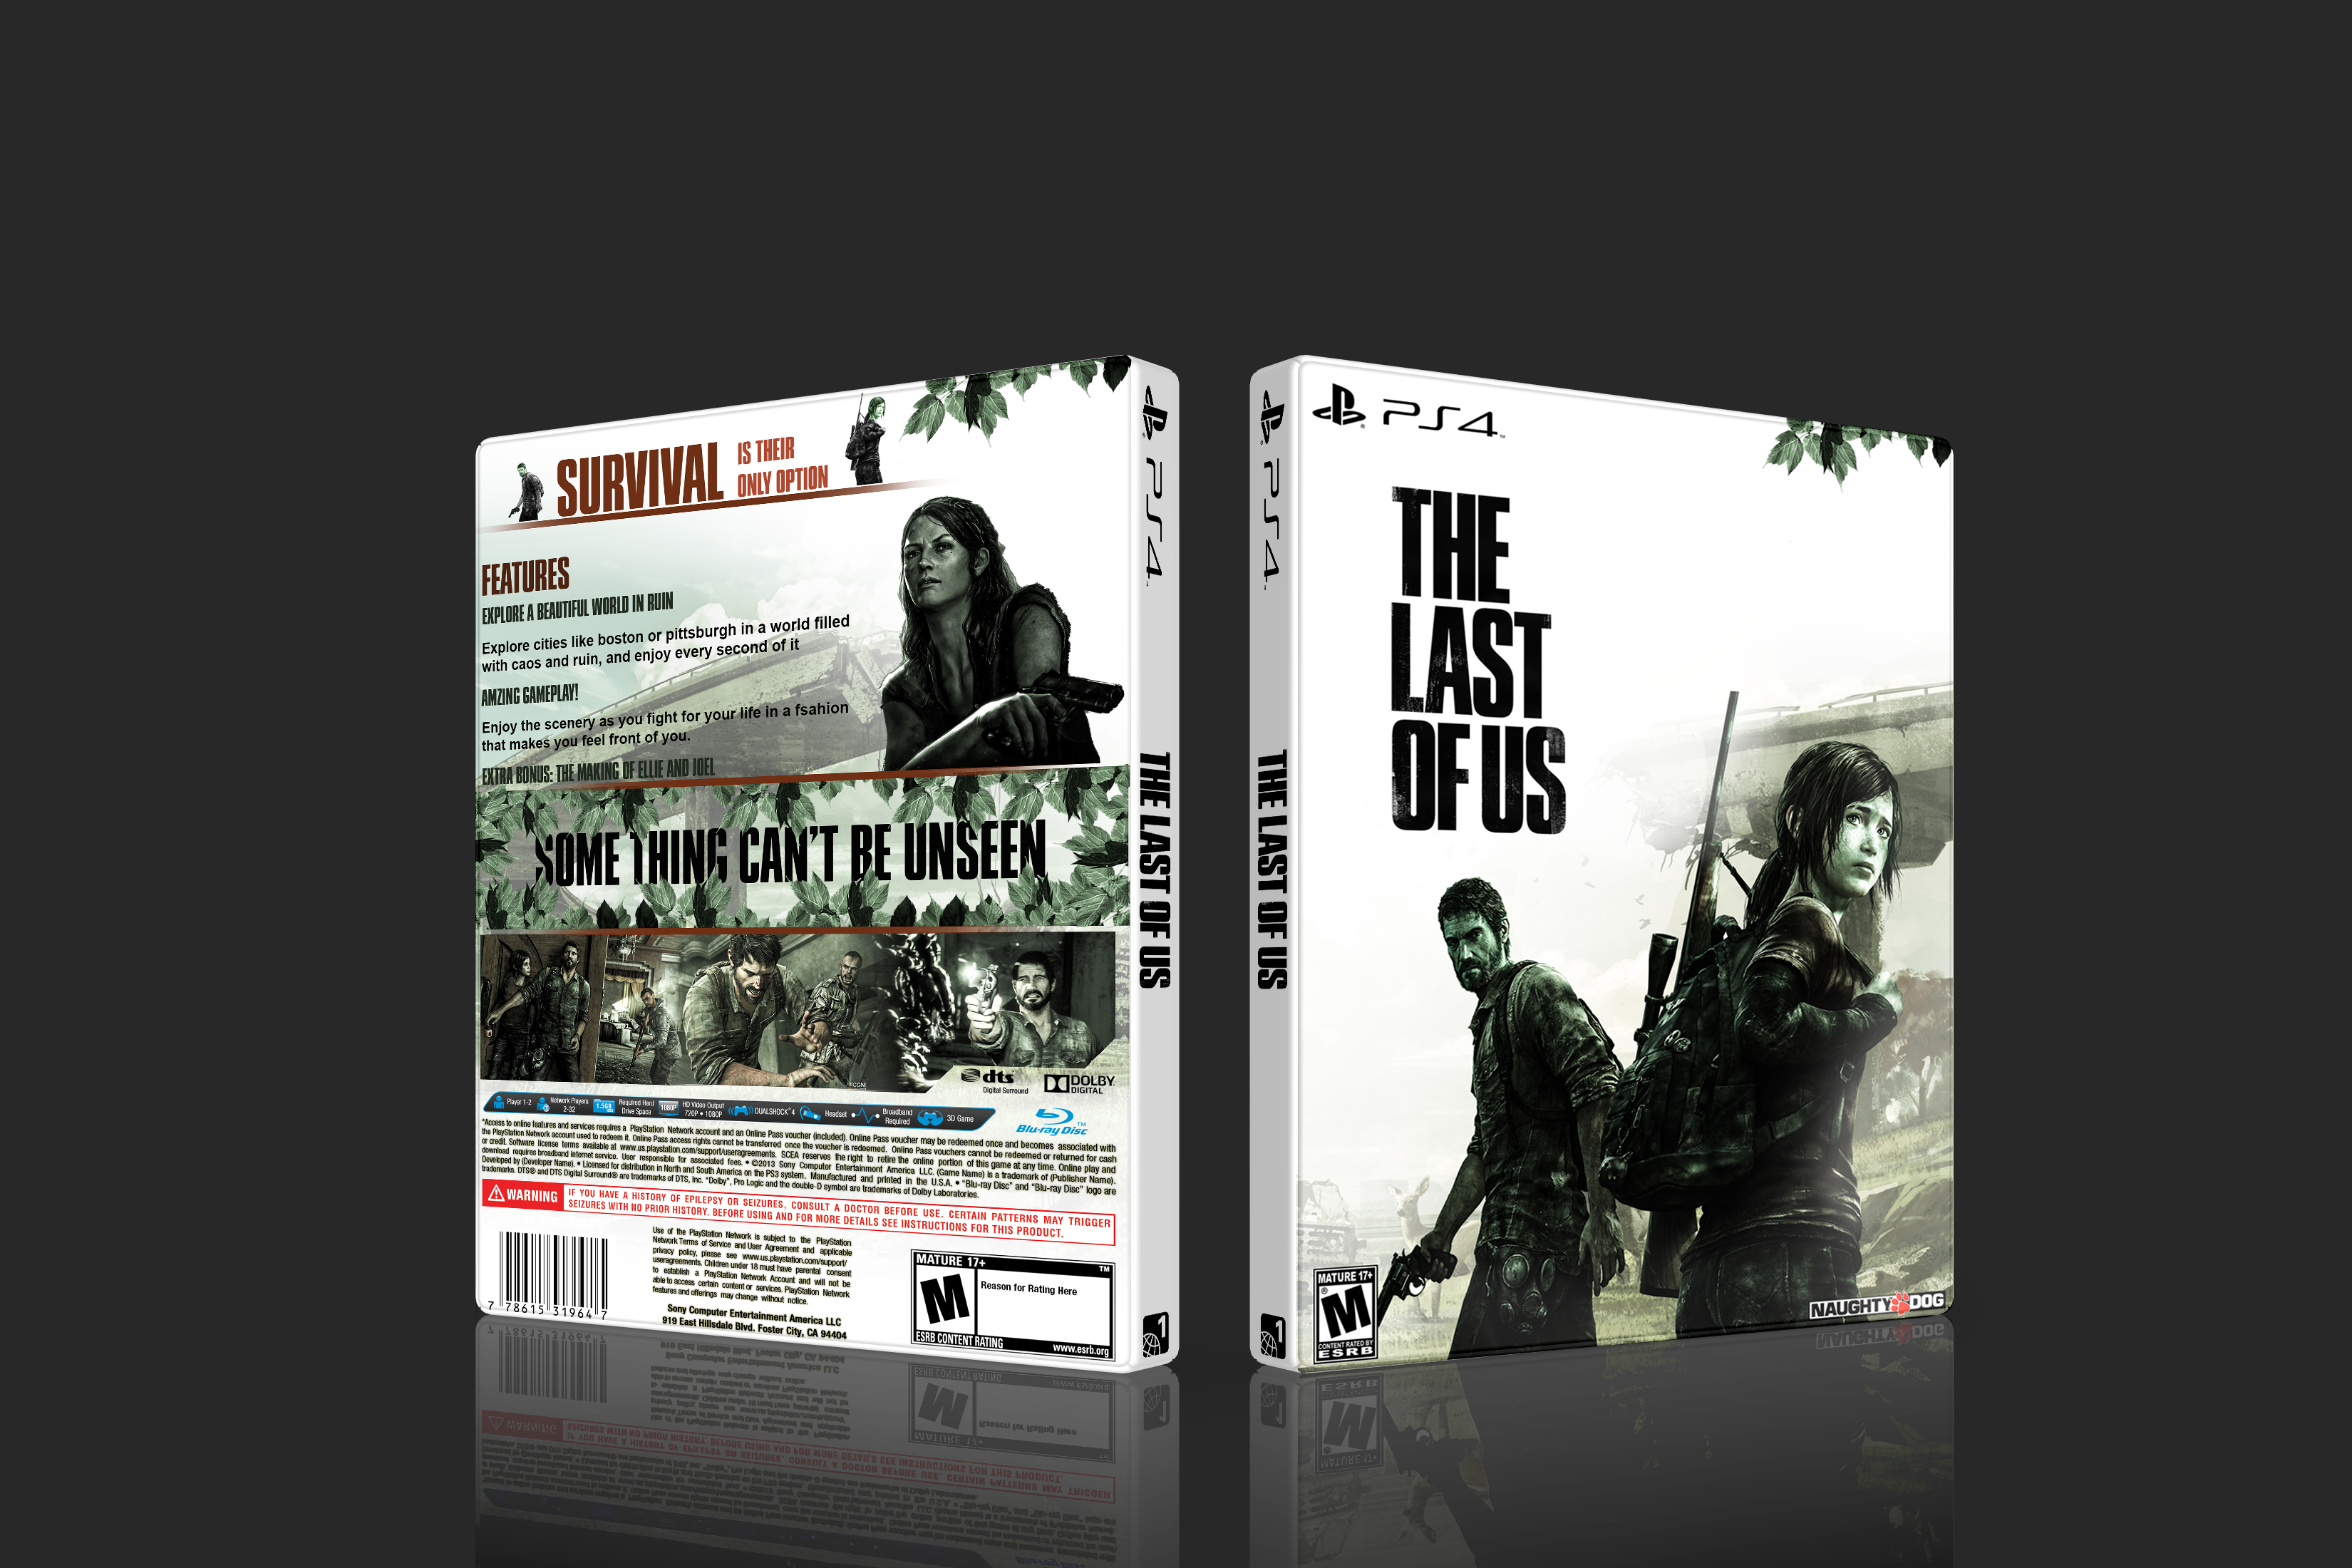 The Last of Us box cover